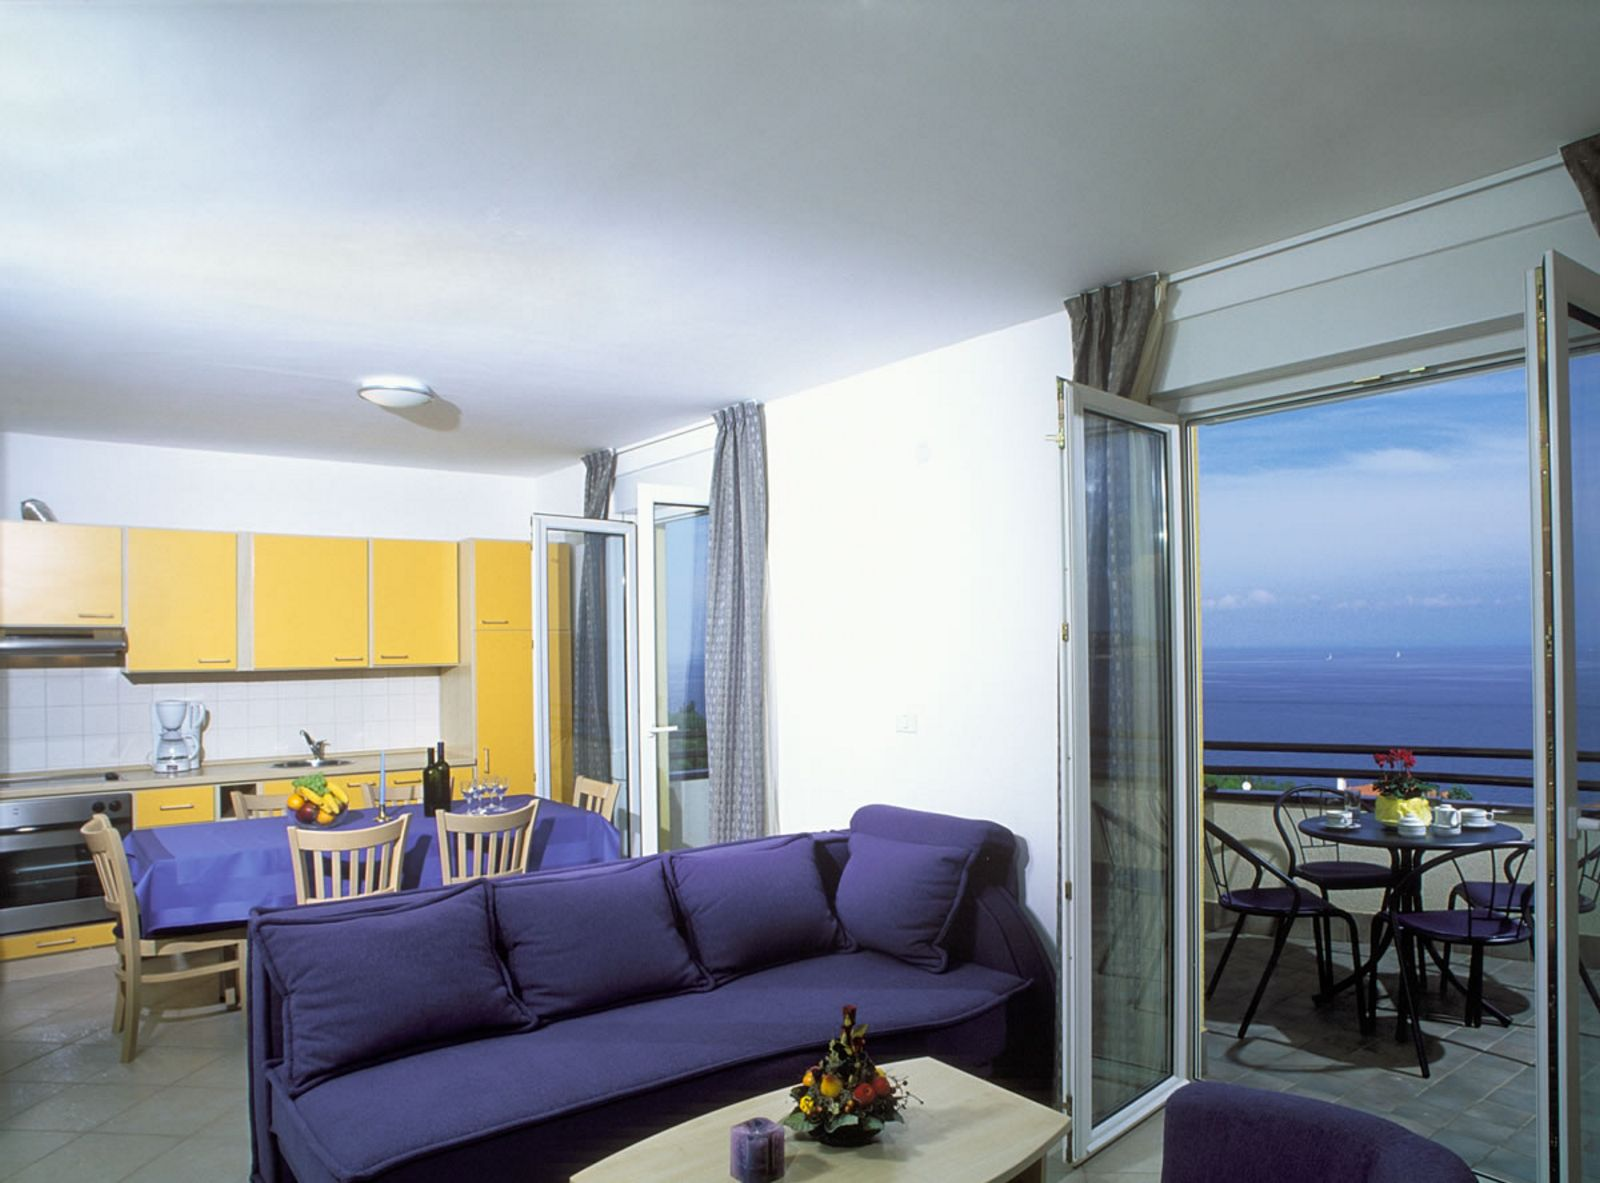 Luxury apartments Istria Farkaš sell duplex with beautiful sea view in golf resort, Umag